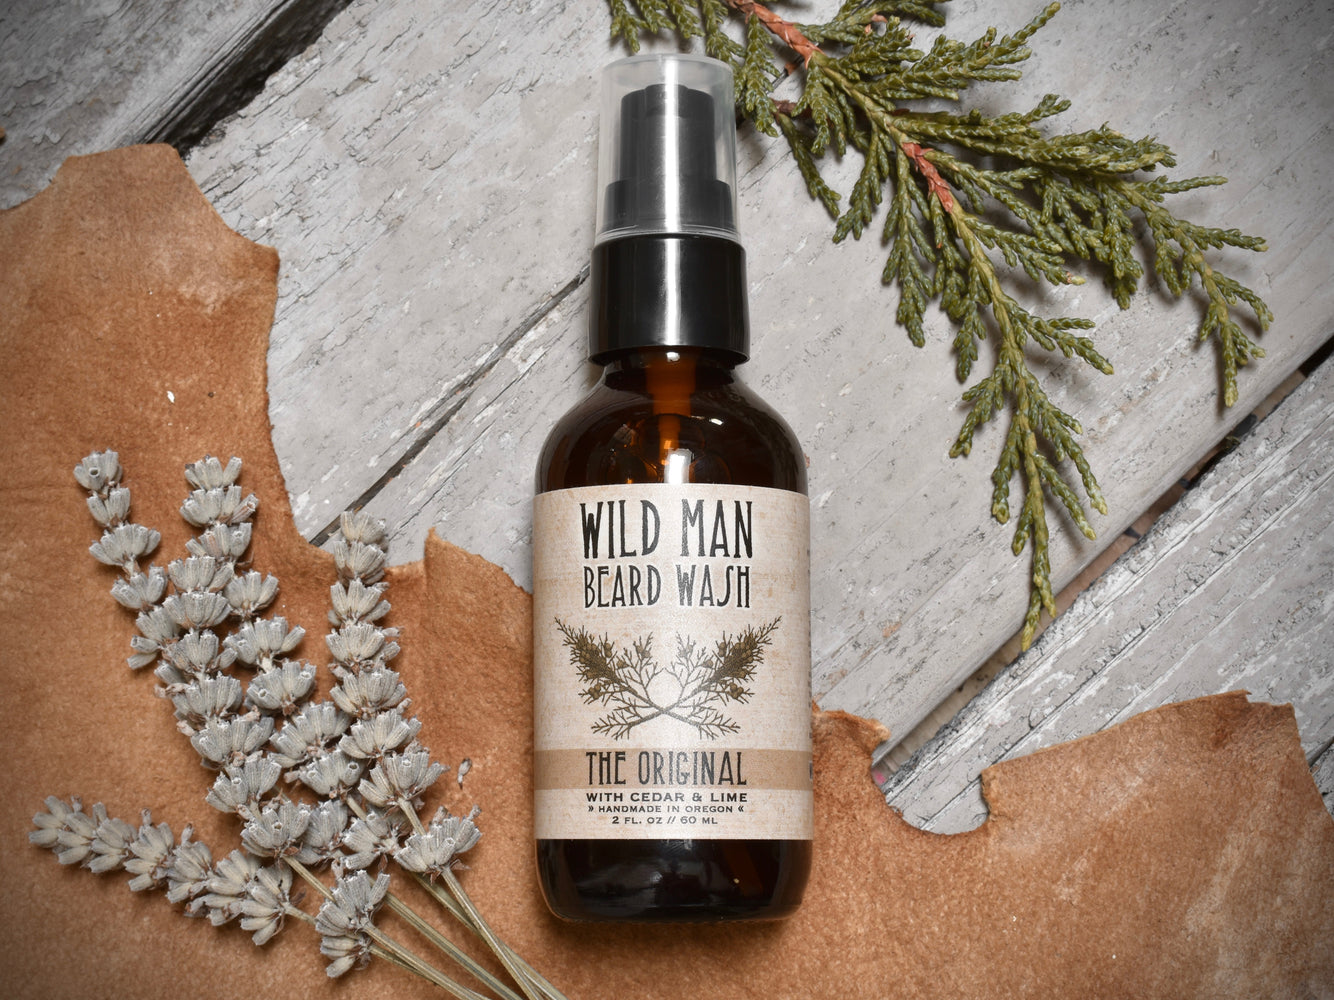 Wild Man Beard Wash - The Original